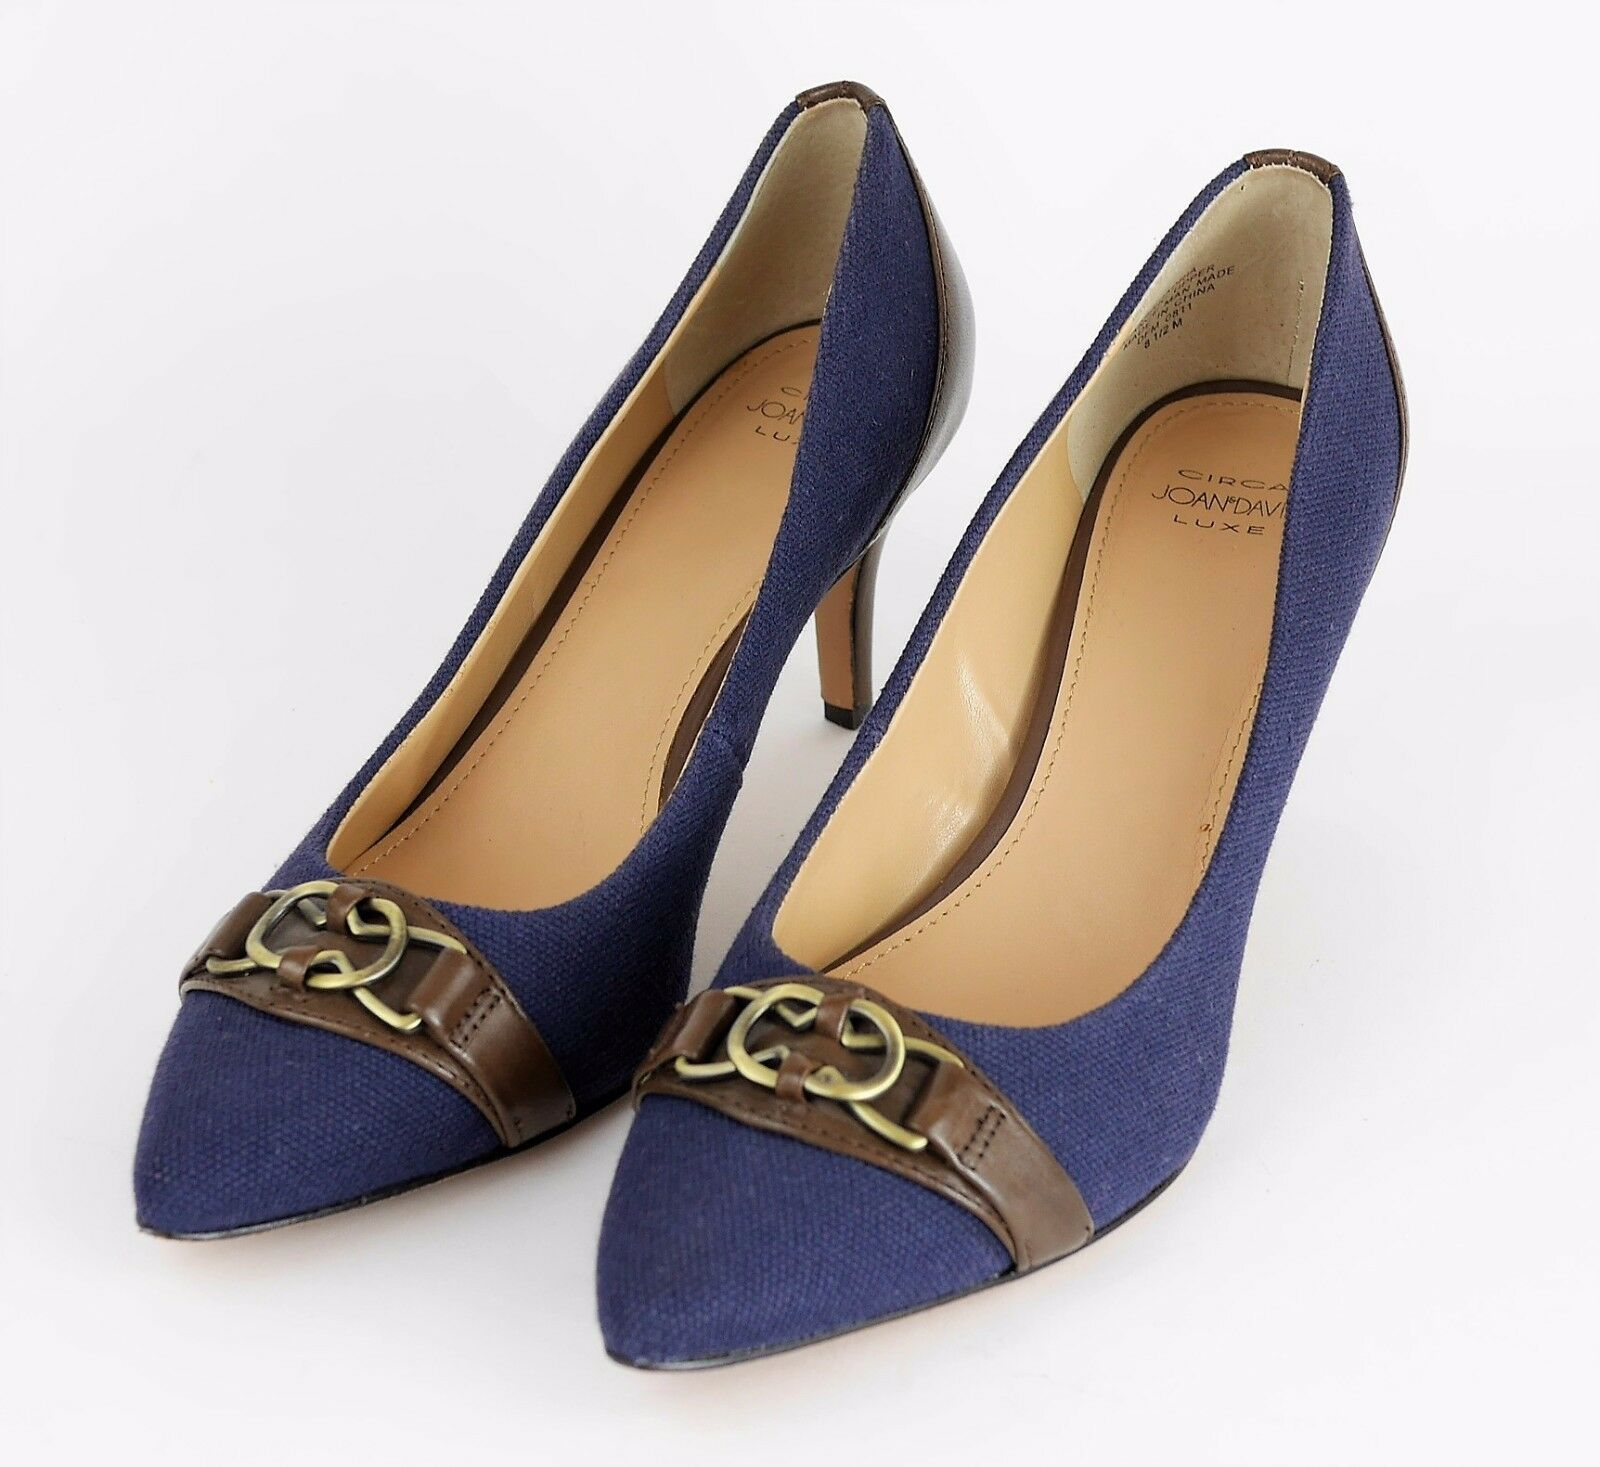 più economico CIRCA JOAN & DAVID LUXE LUXE LUXE Navy blu Canvas Closed Toe High Heel Pumps  donna 8.5  una marca di lusso